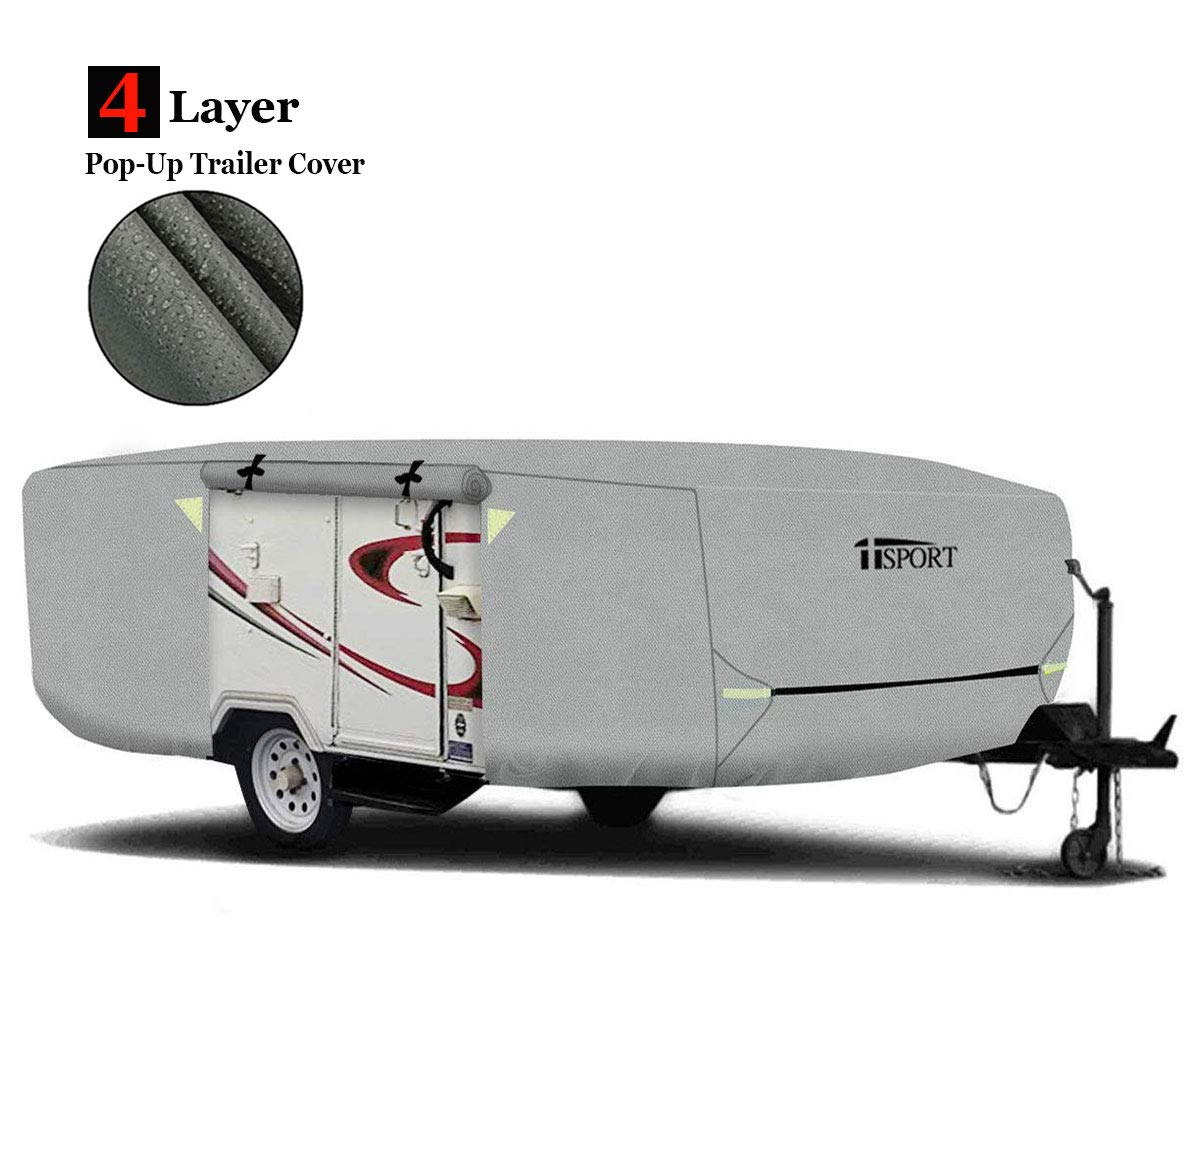 Water Resistant Pop Up Folding Camper RV Cover Fits 12-14ft Long Trailers - Heavy Duty Weatherproof RV Storage Cover with 4-Ply Poly Fabric by iiSPORT